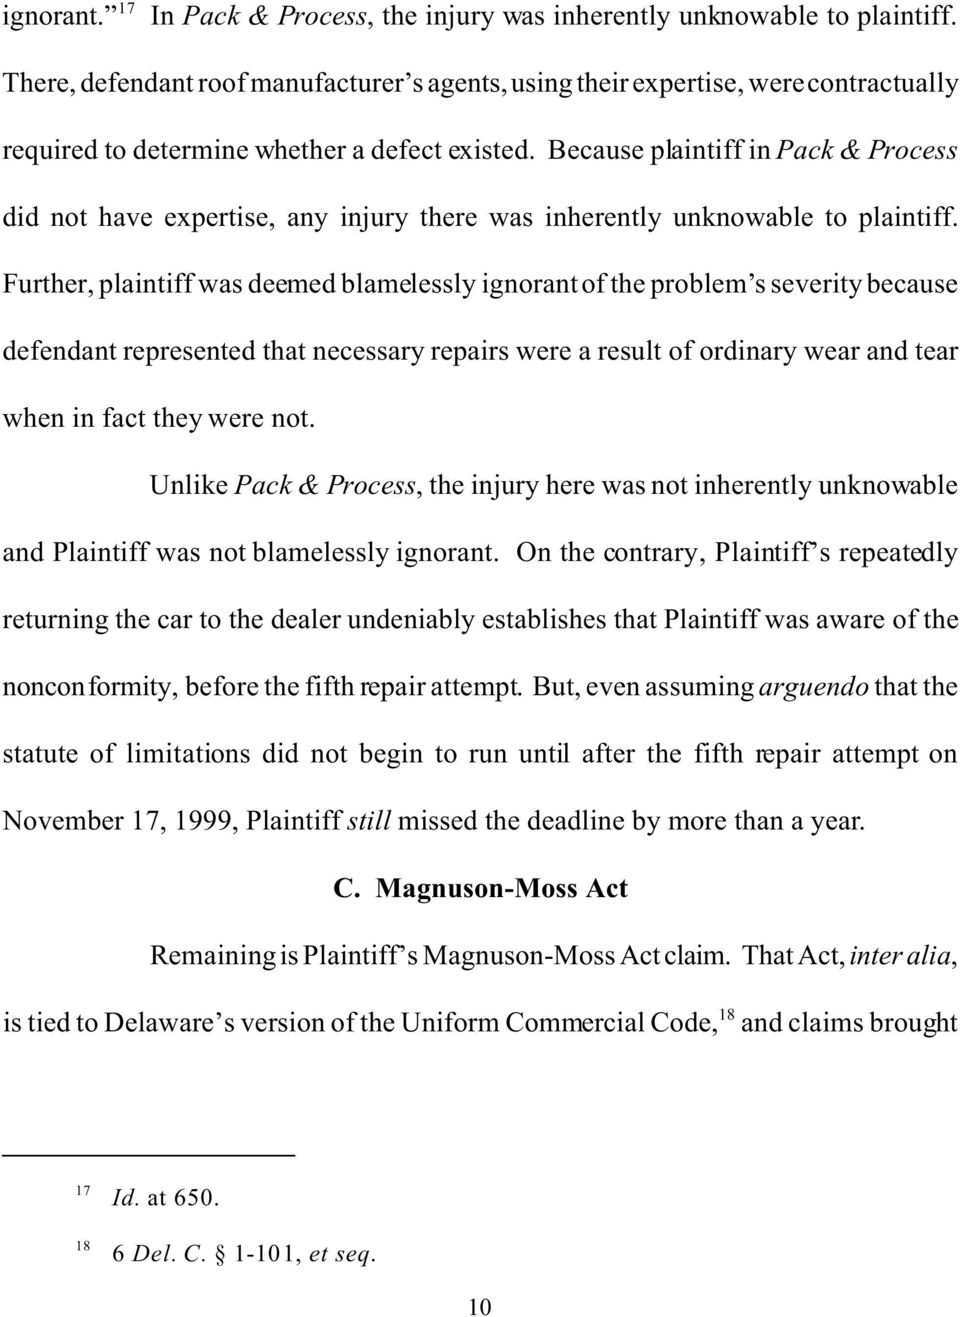 Because plaintiff in Pack & Process did not have expertise, any injury there was inherently unknowable to plaintiff.